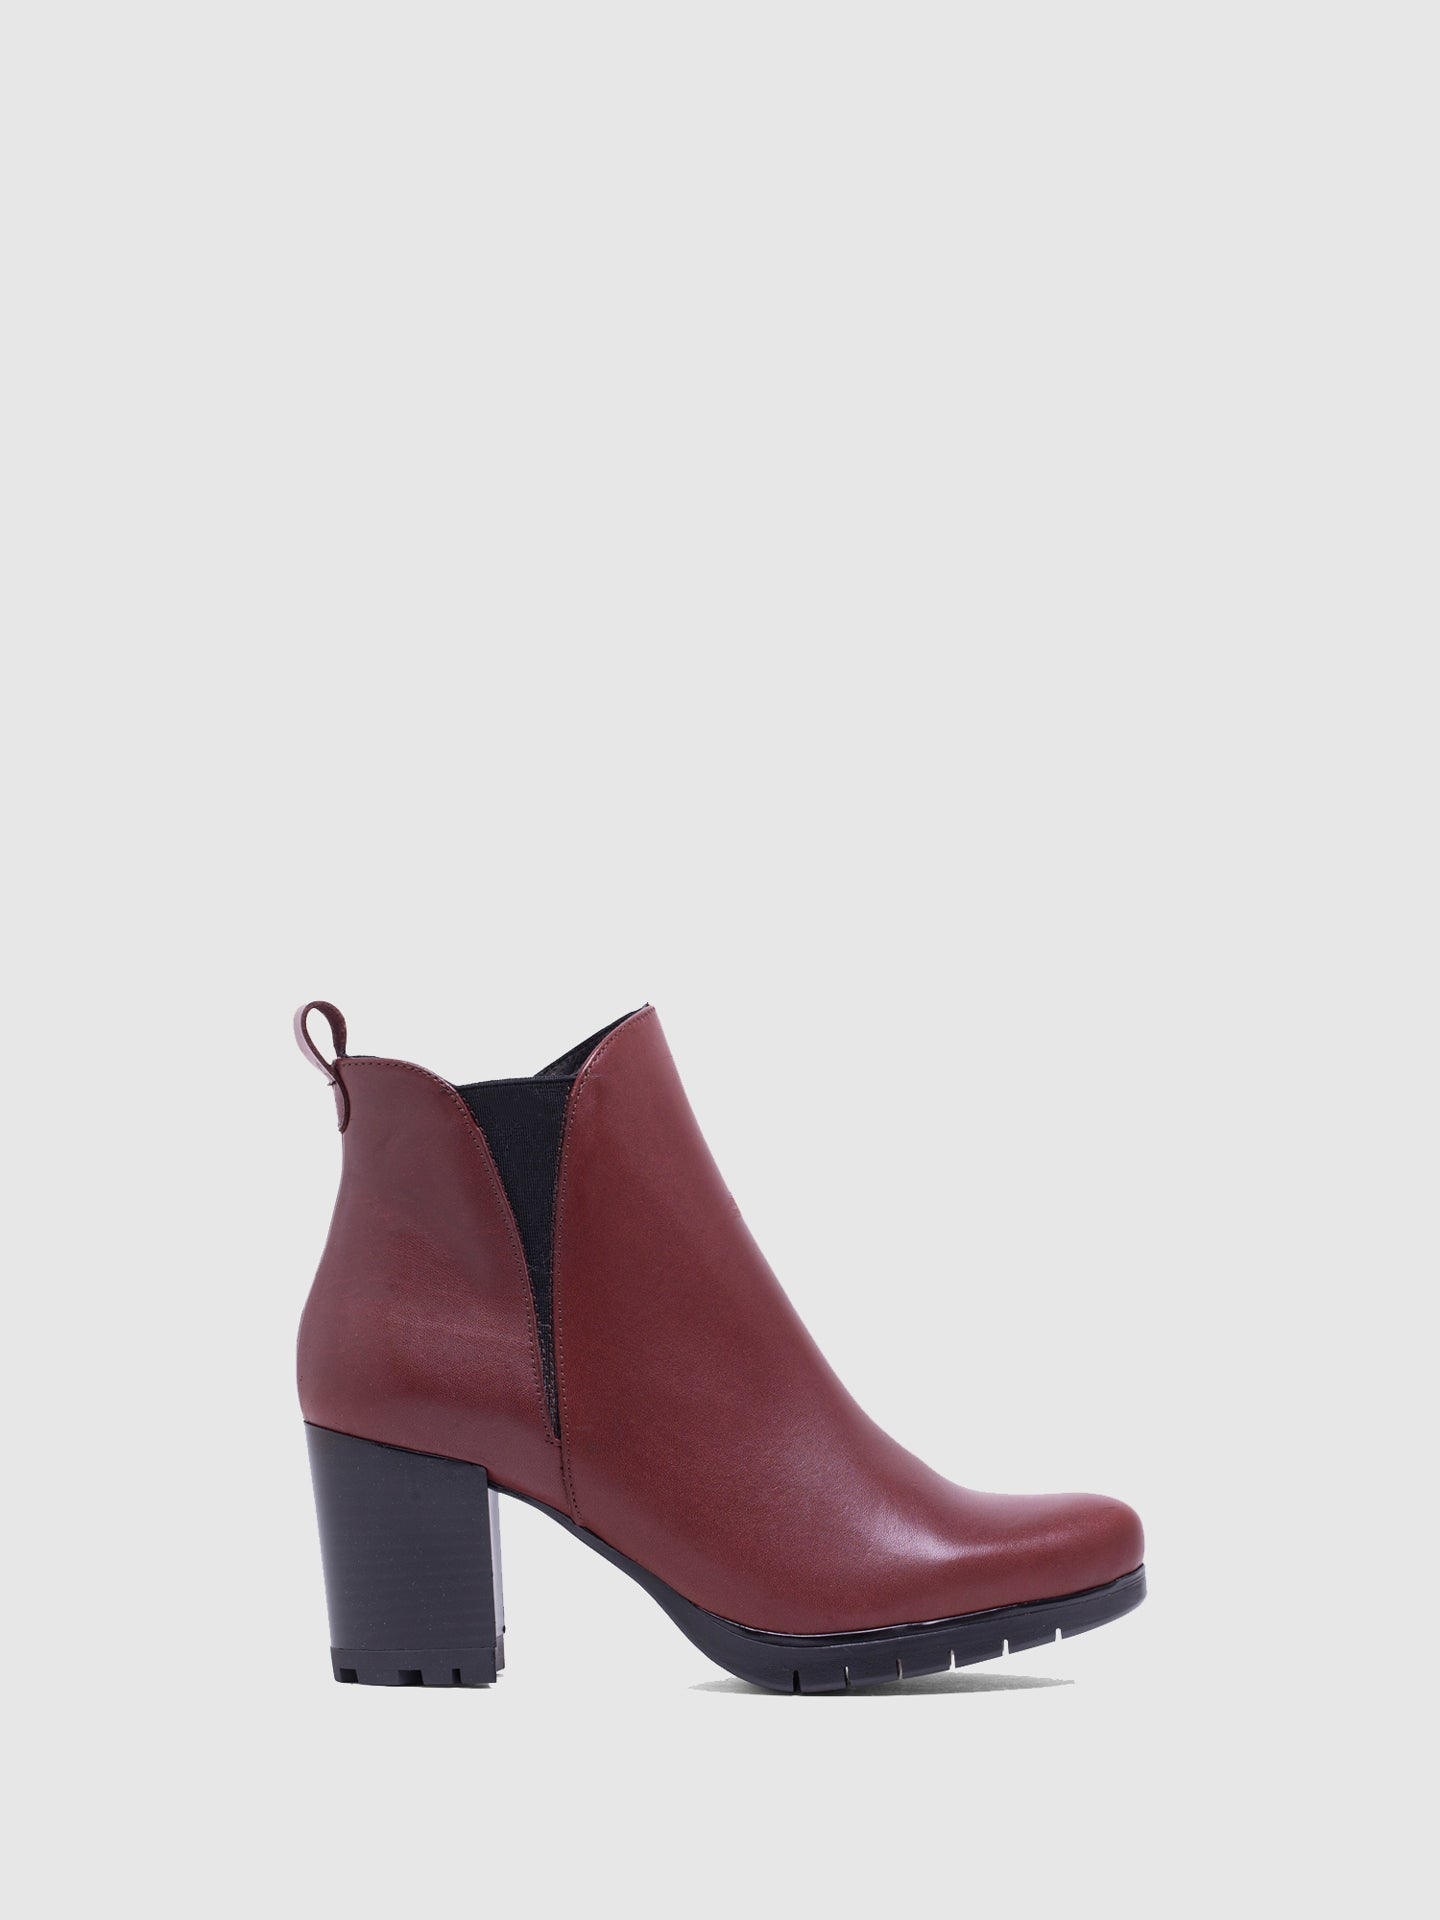 MARILA SHOES DarkRed Elasticated Ankle Boots